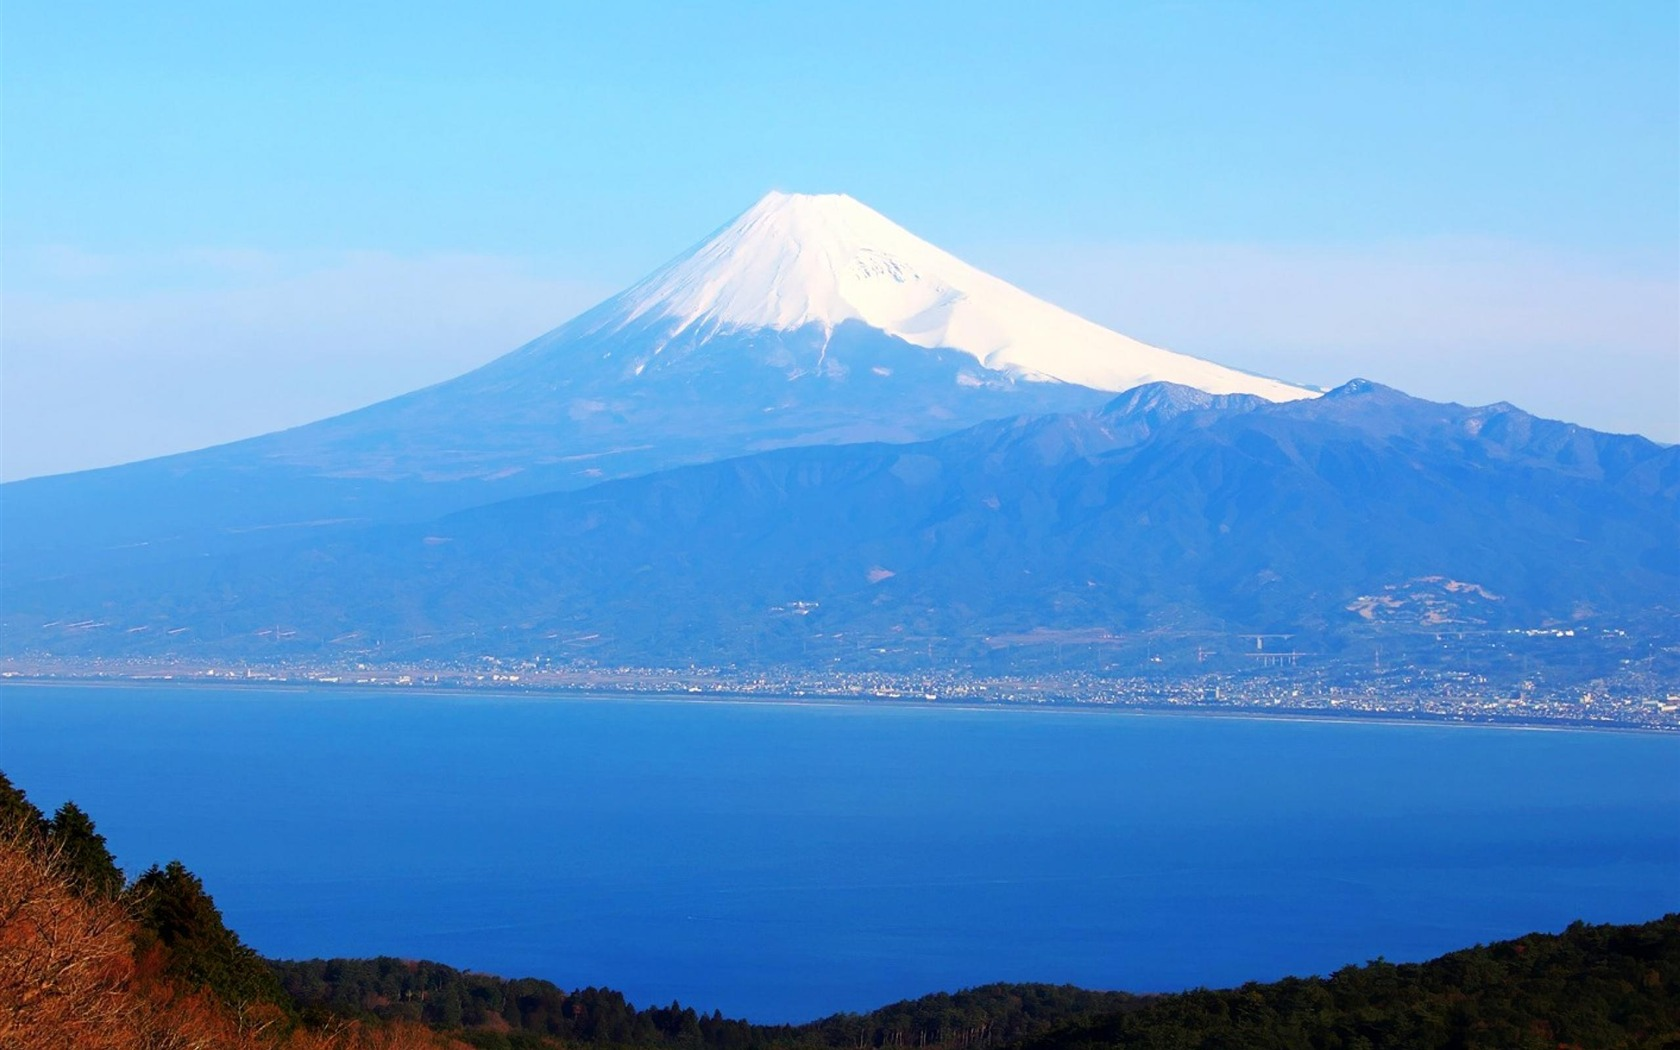 Mt Fuji Japan nature photo wallpaper   1680x1050 wallpaper download 1680x1050